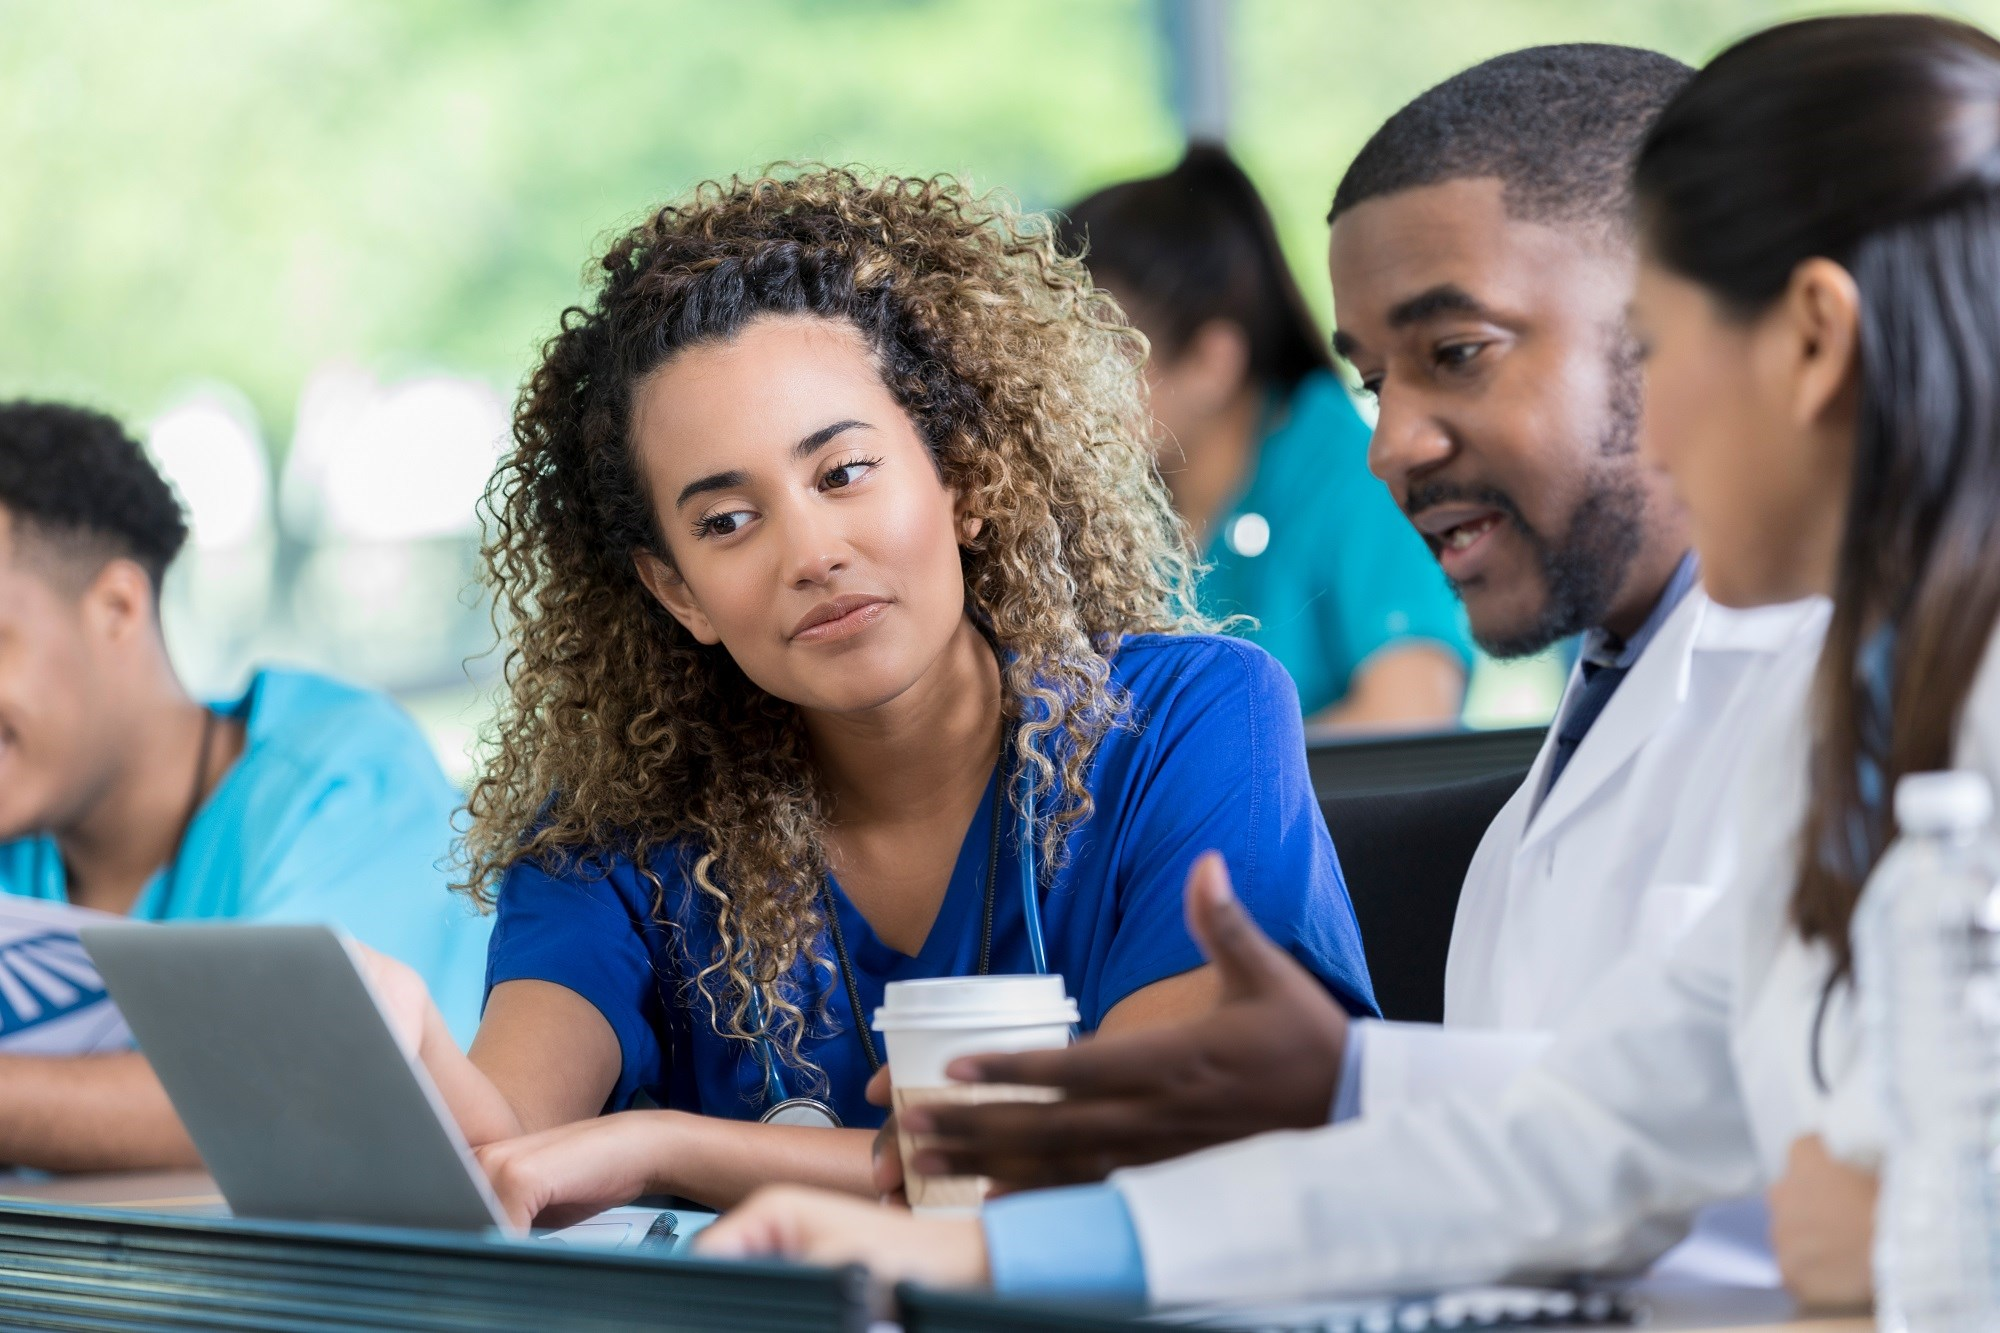 Minority Medical Students Report More Barriers to Dermatology